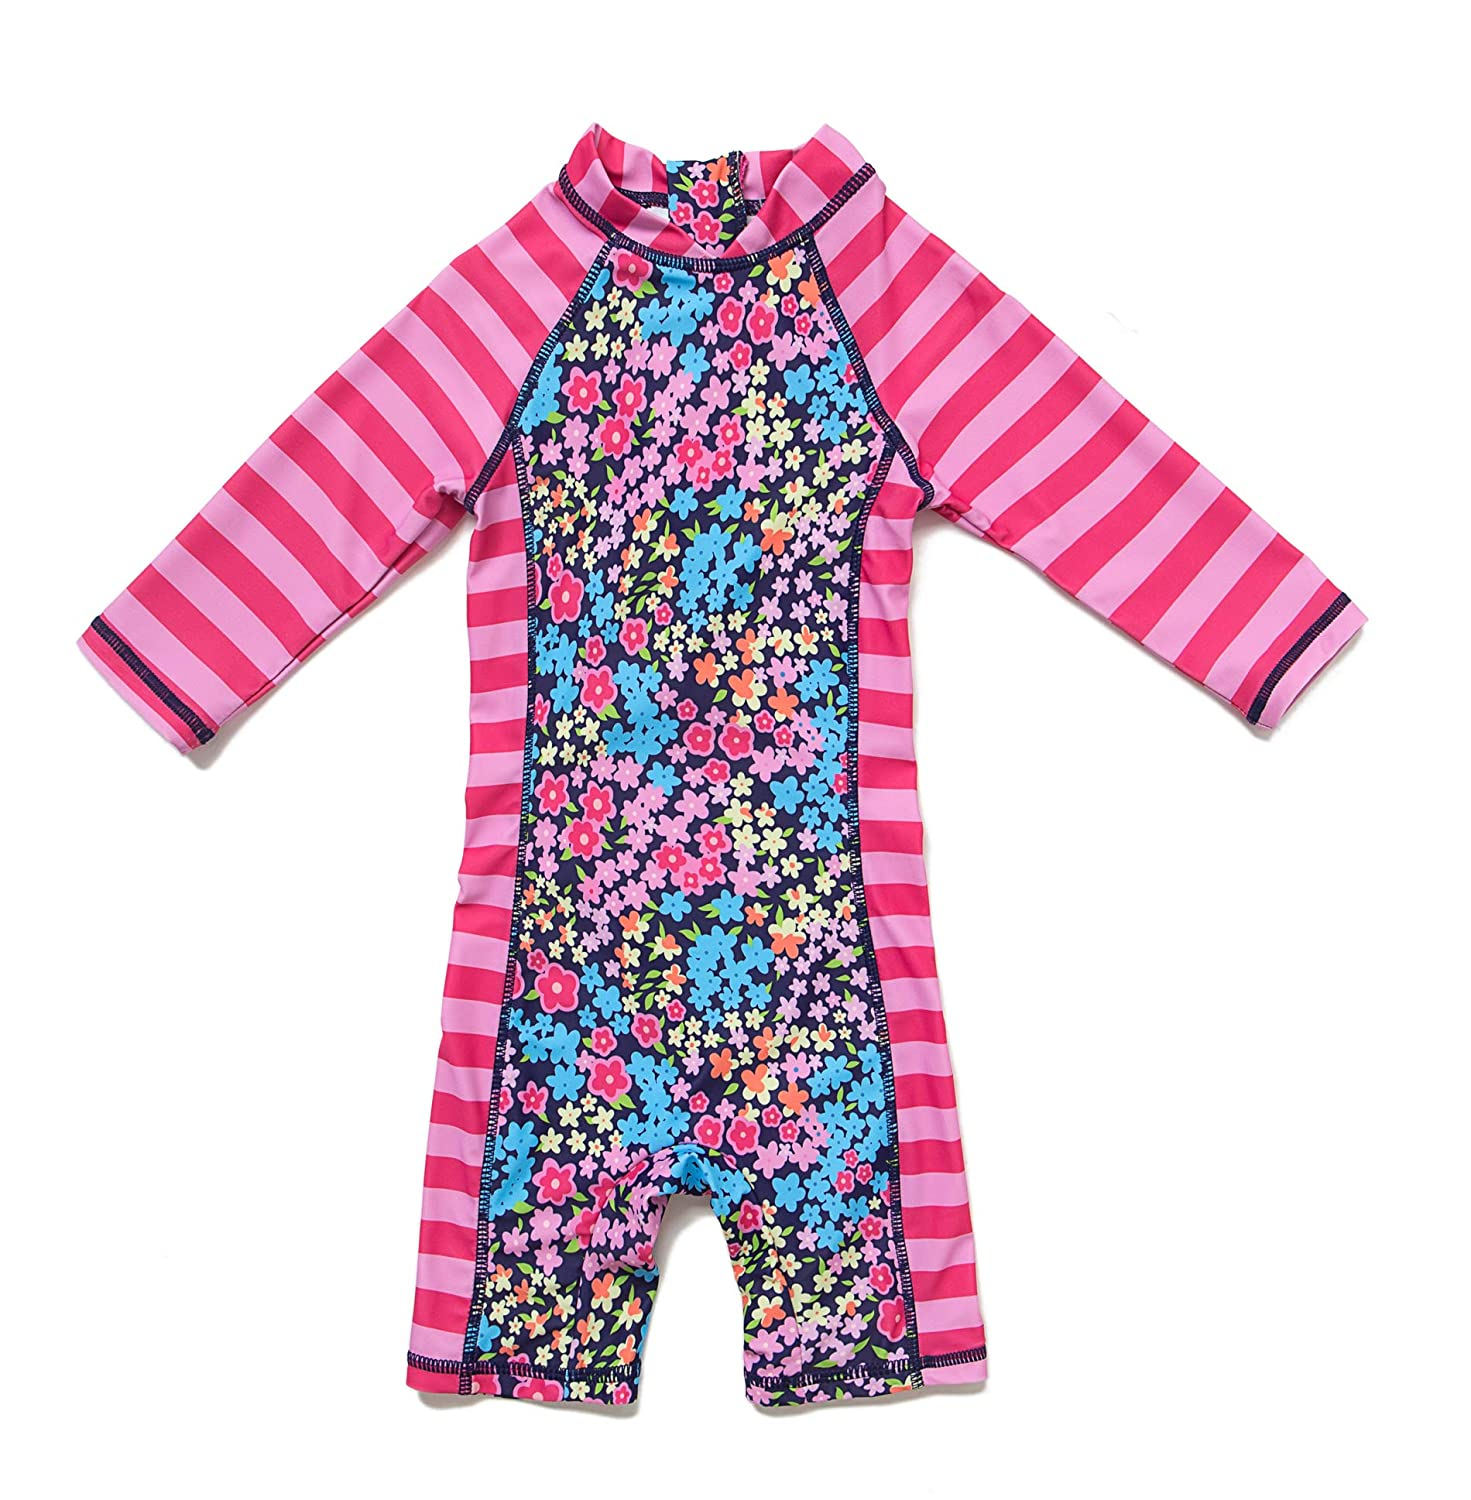 Sun Protection One Pieces Long Sleeves Swimwear with Sun Hat Purple Flowers,9-12Months Baby Girls Sunsuit UPF 50